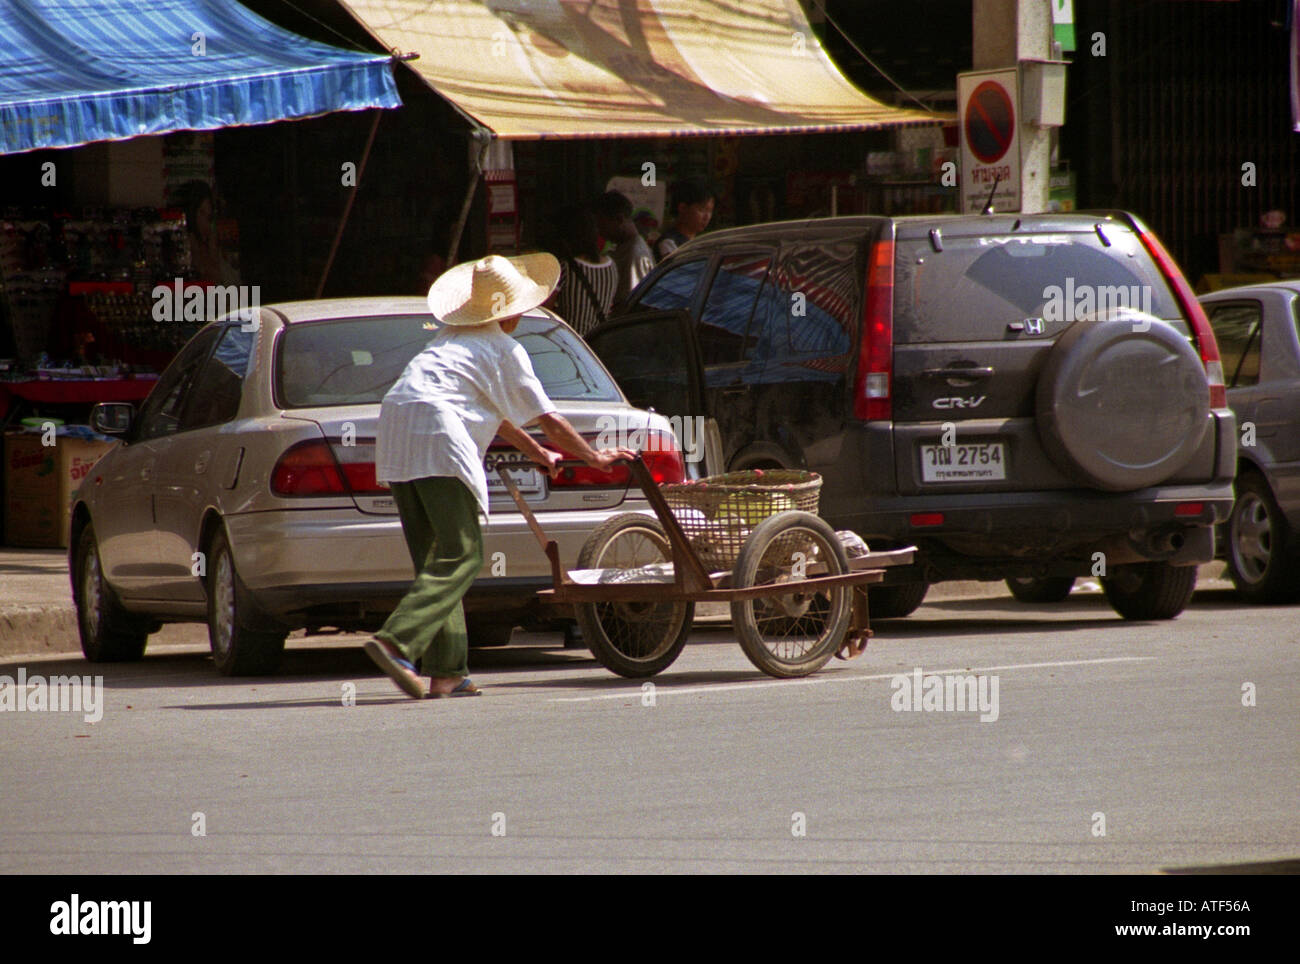 Man with sombrero like hat walk push two wheel cart carry